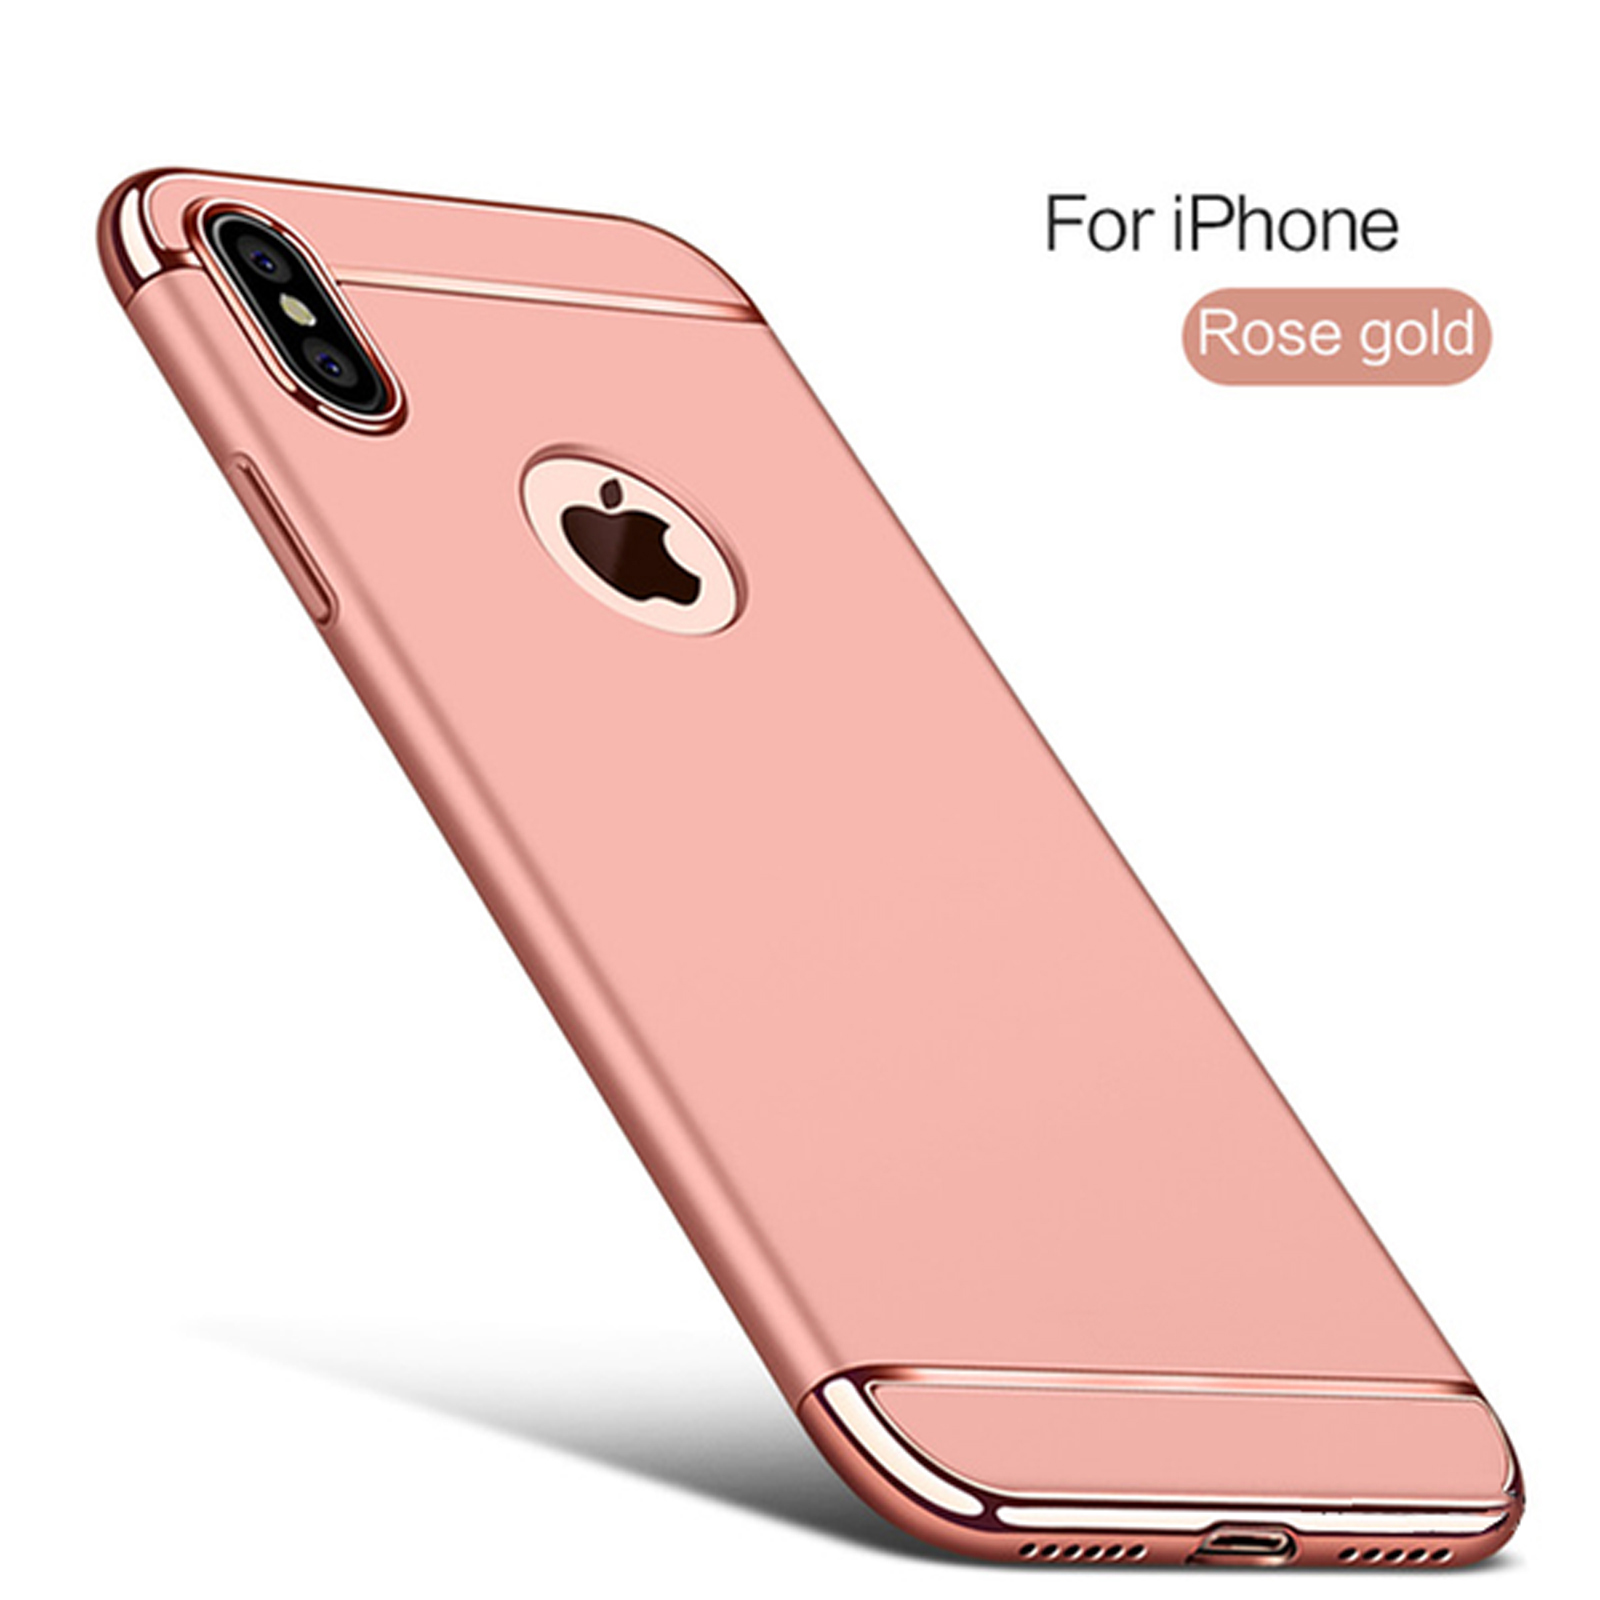 Luxury-Matte-Case-Tempered-Glass-Cover-For-Apple-iPhone-X-XS-XR-Max-10-8-7-6s-6 thumbnail 51